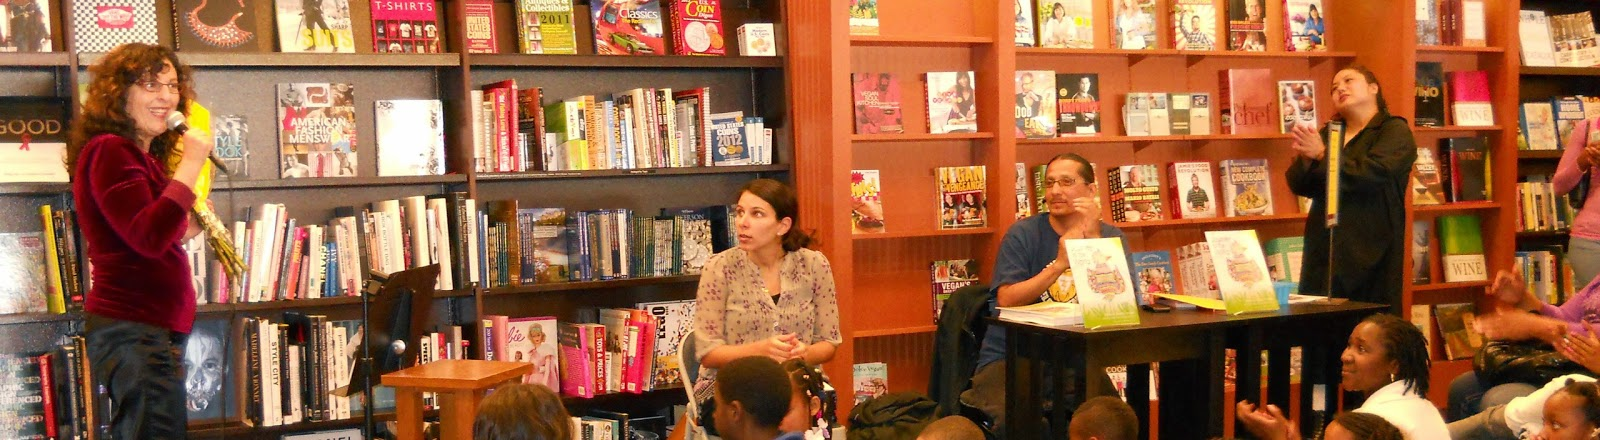 Lisa B (Lisa Bernstein) at bookstore event